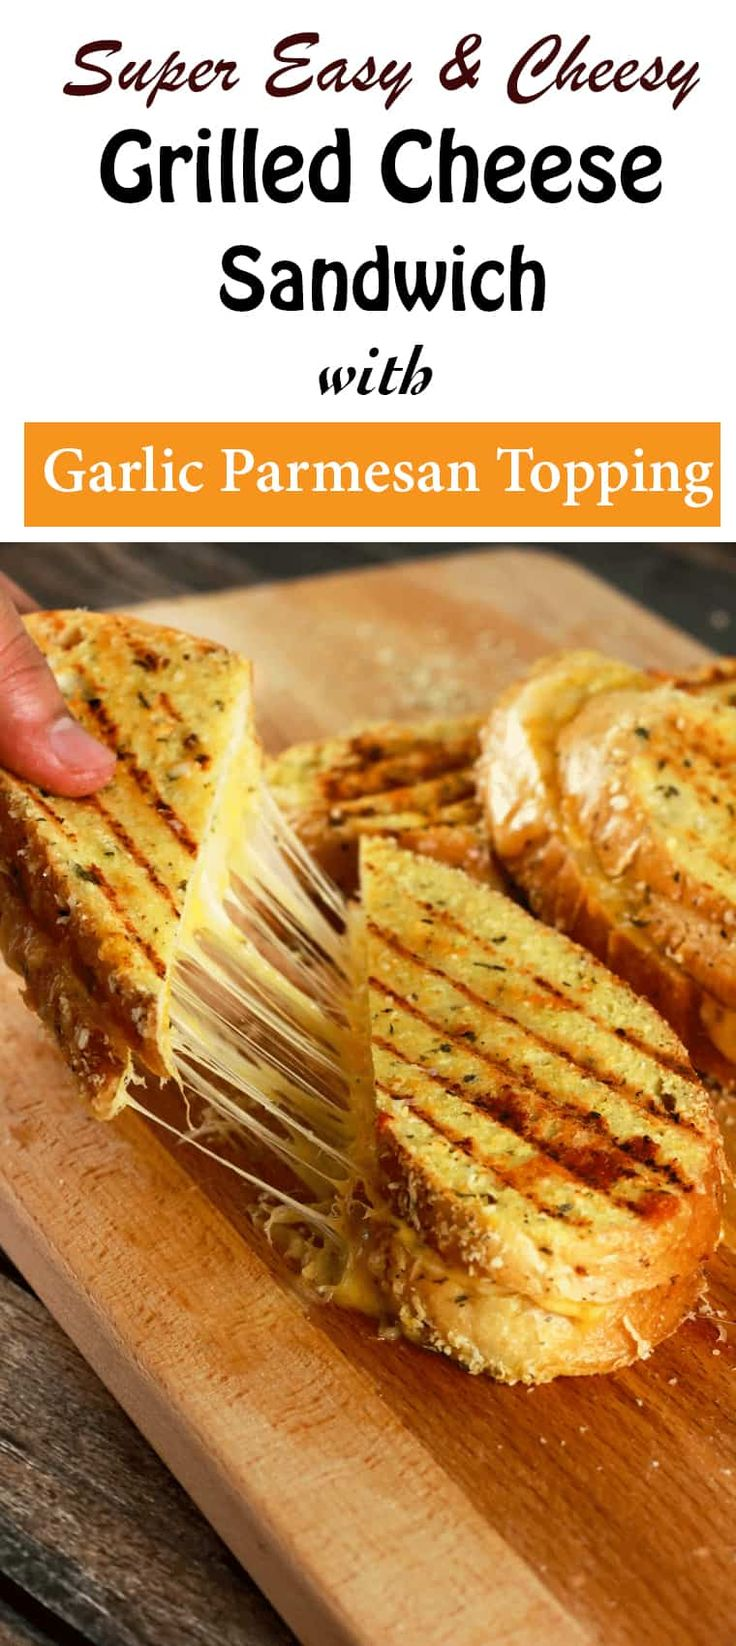 Grilled Cheese Sandwich with Garlic Parmesan Crust